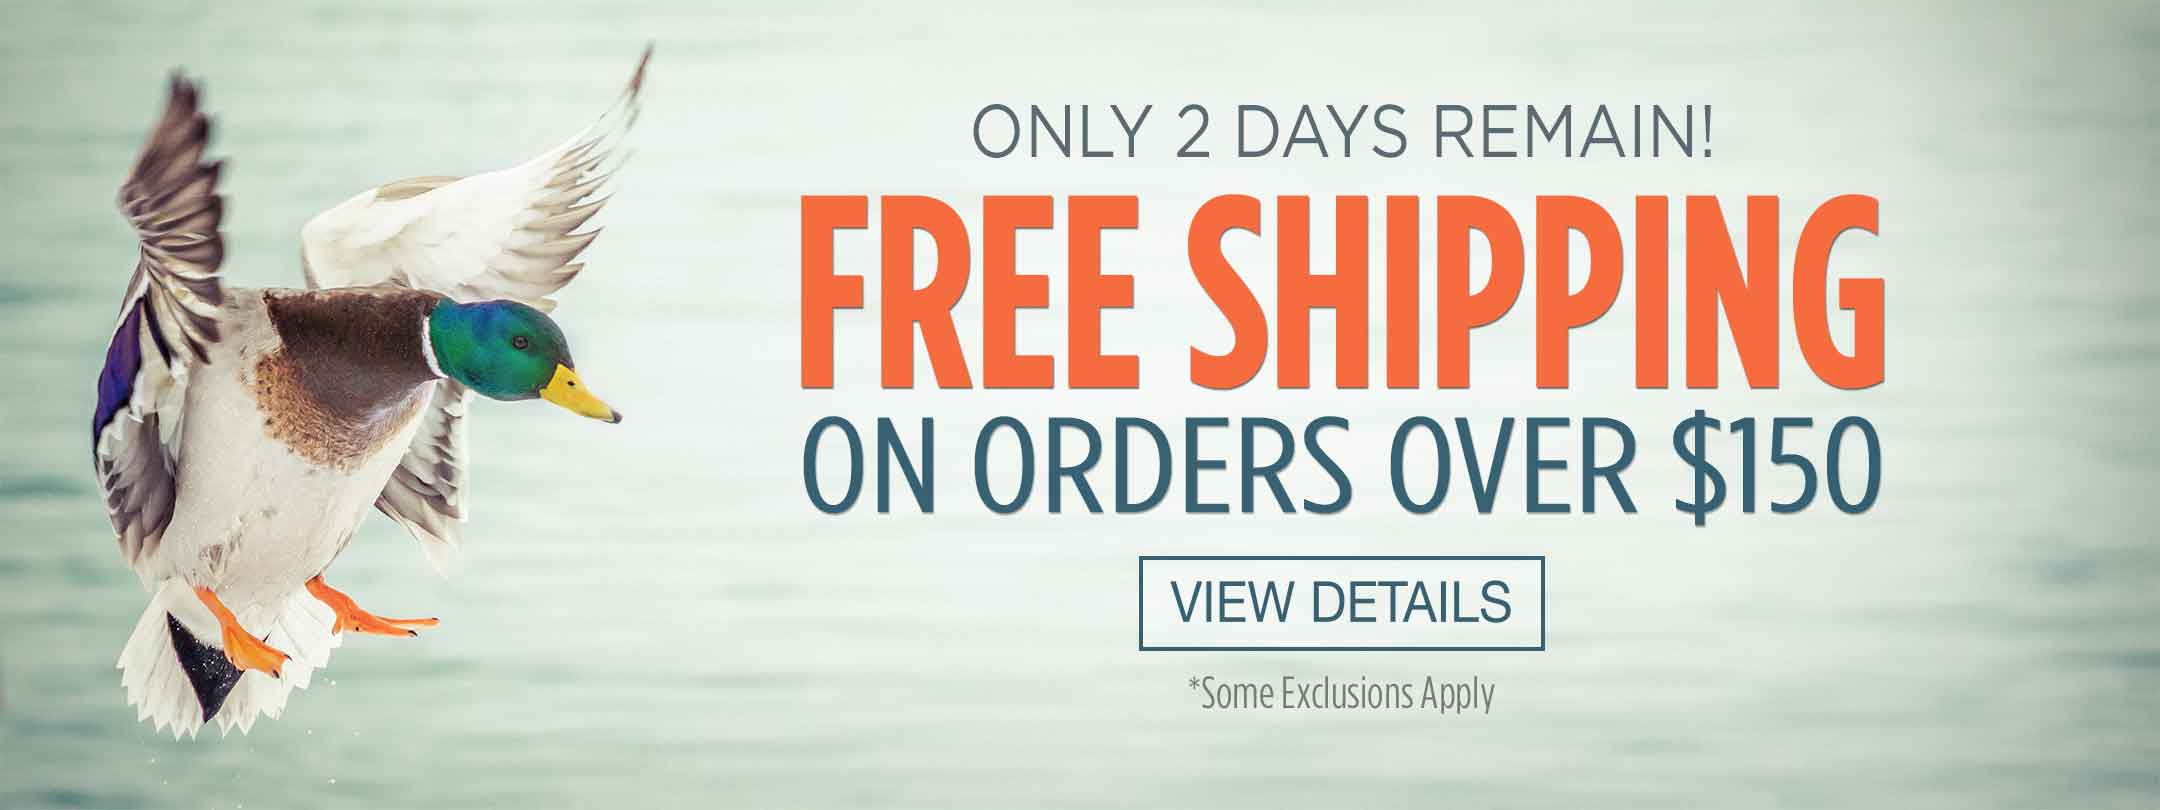 Only 2 Days Left! Free Shipping